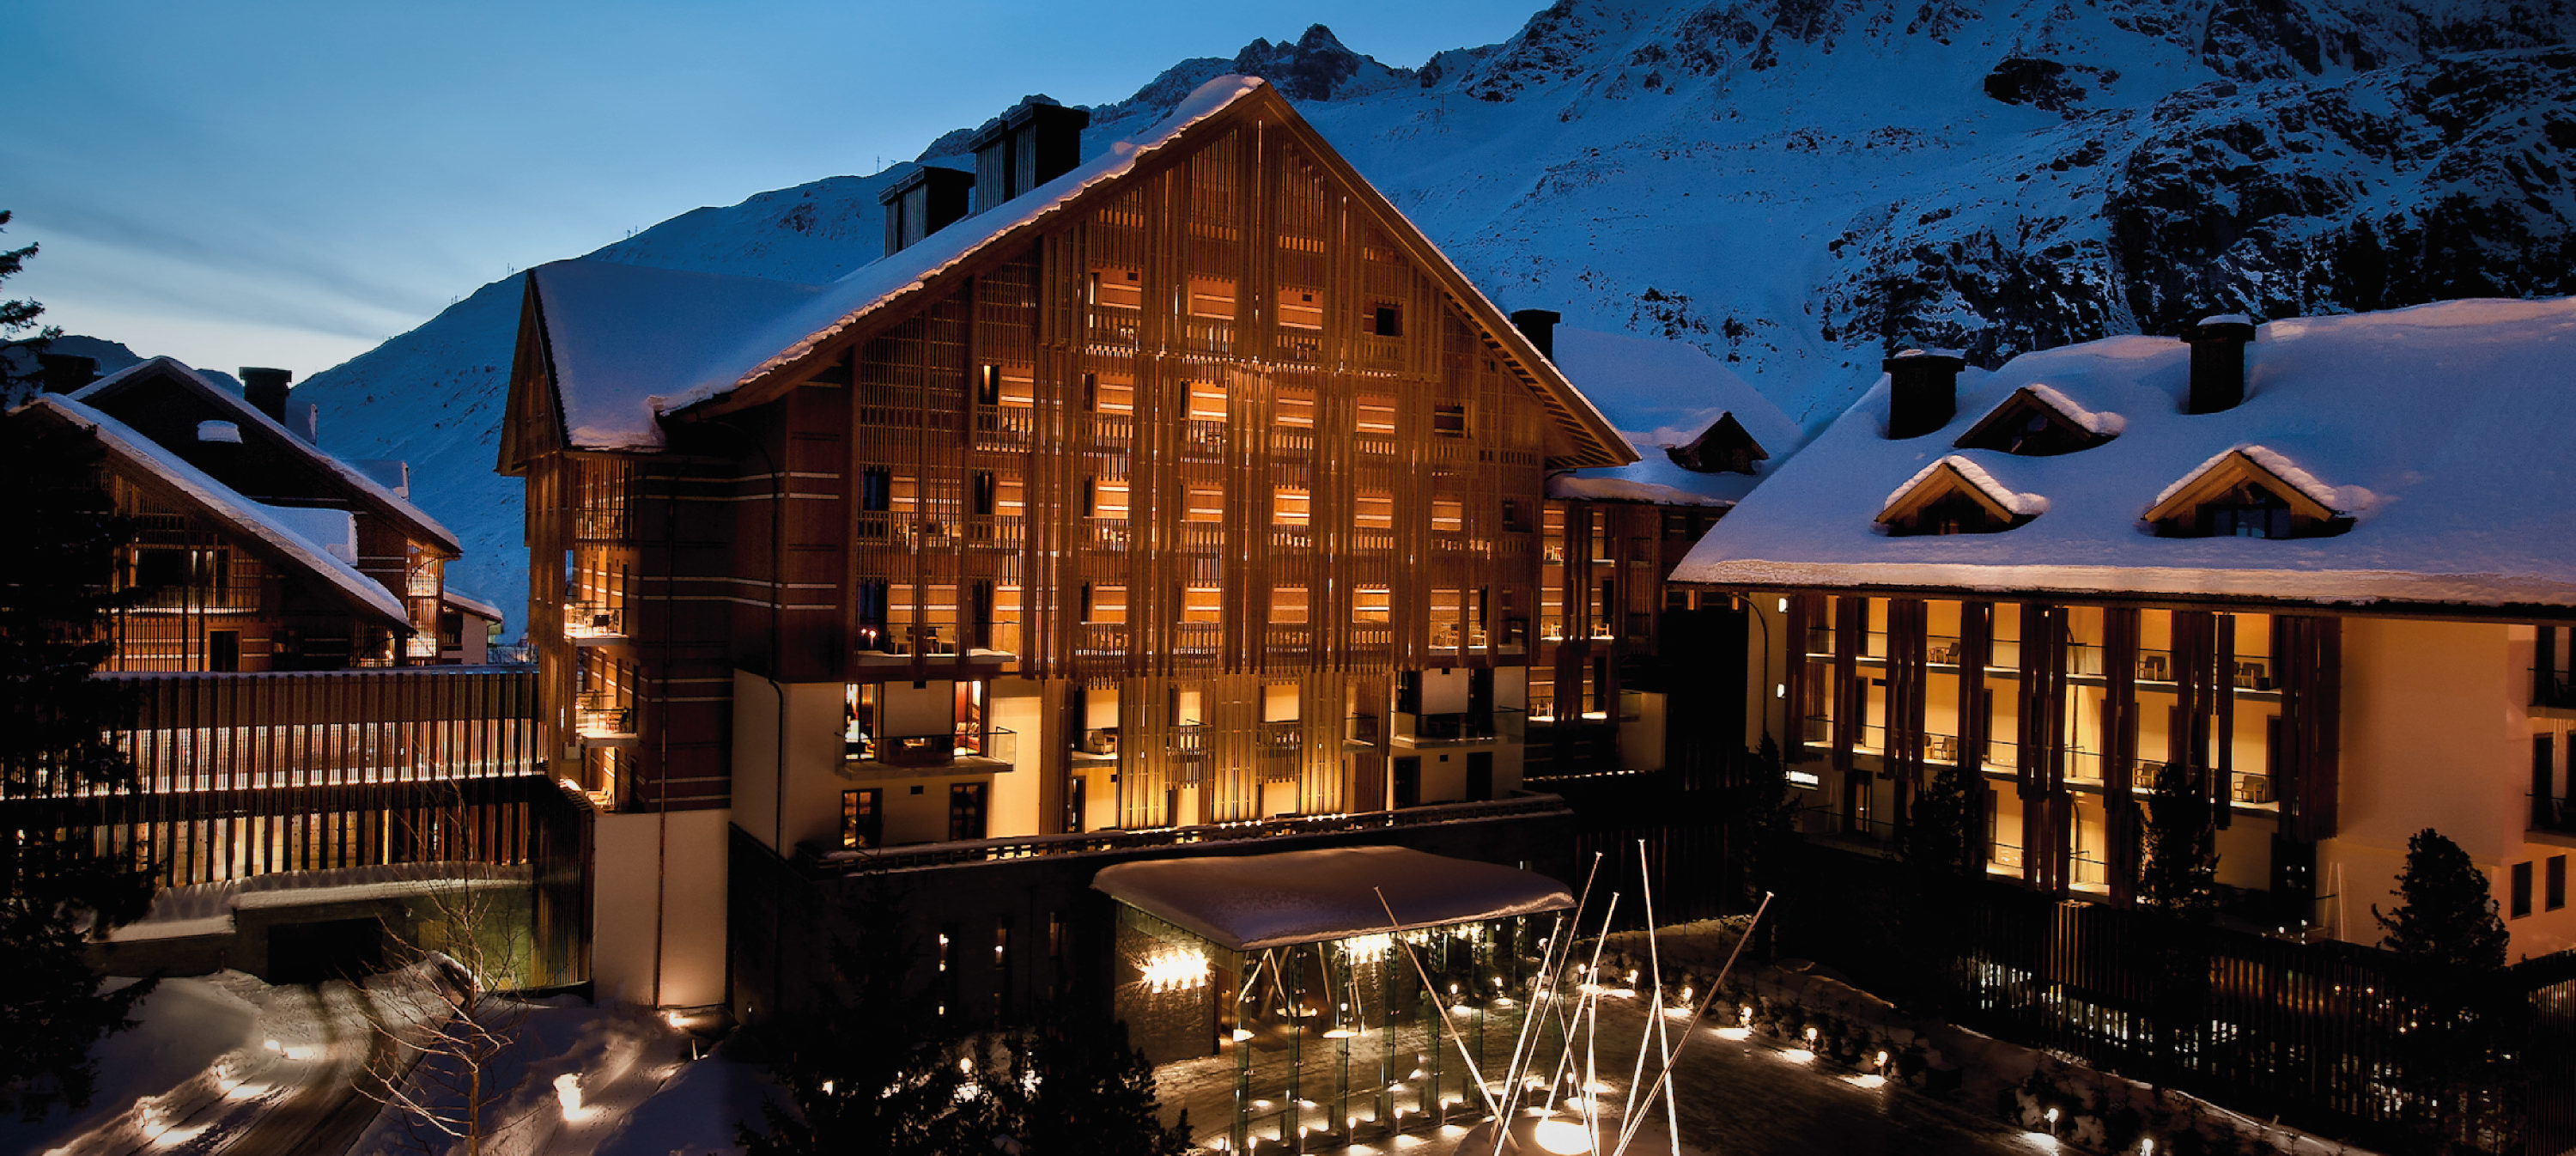 Chedi Andermatt Exterior in the snow